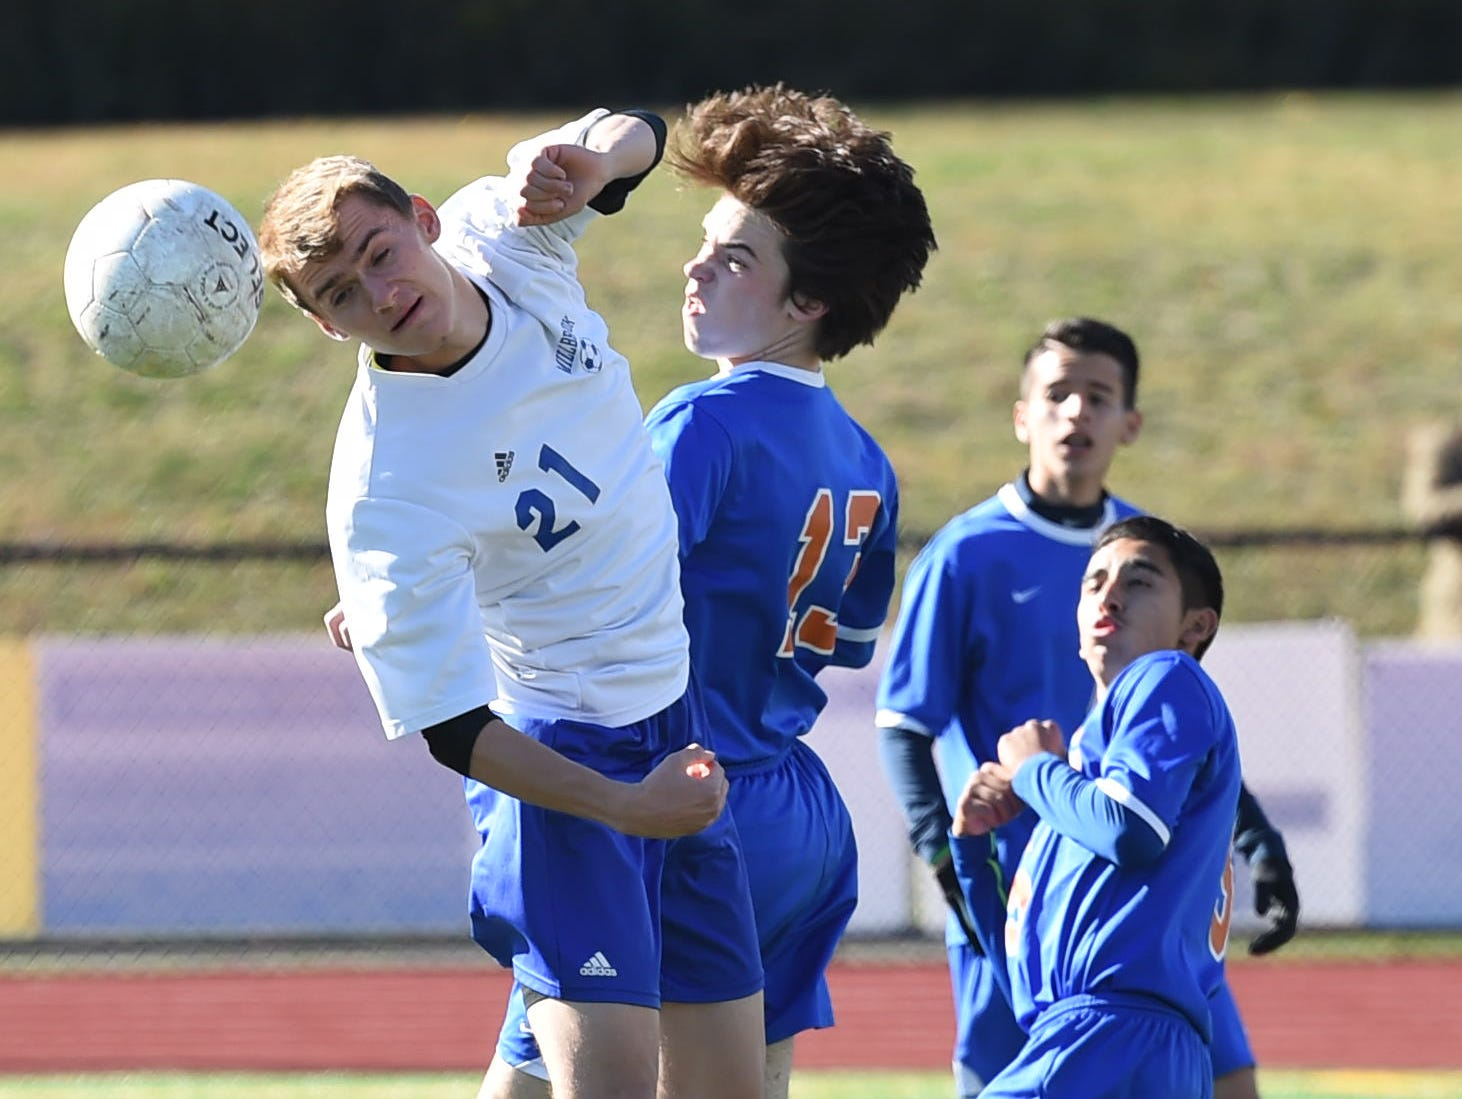 Millbrook's Chris Maresca headers the ball away from Chester's Aidan O'Connor during Monday's sectional semifinal game.